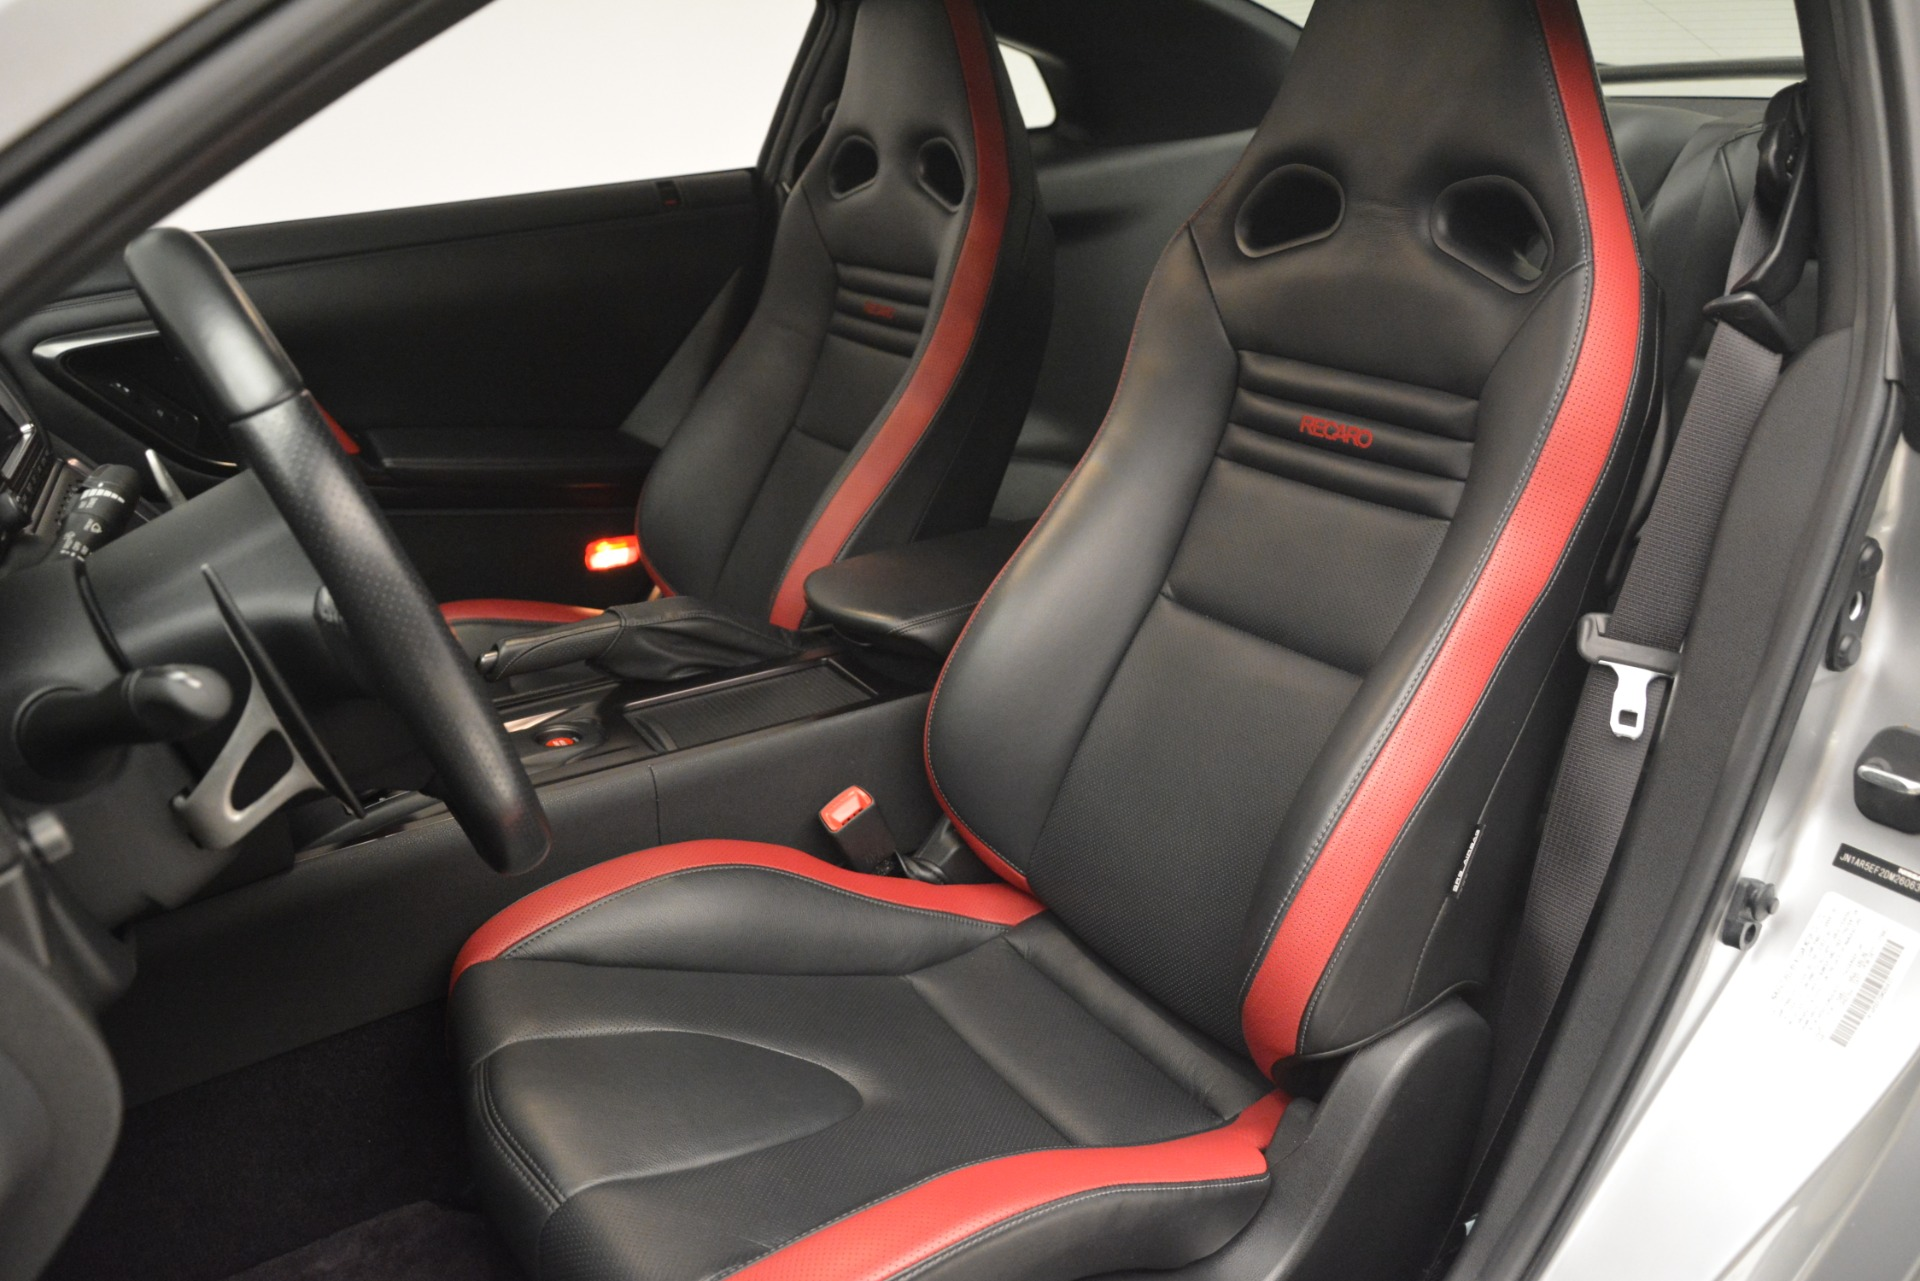 Used 2013 Nissan GT-R Black Edition For Sale In Greenwich, CT 3028_p17